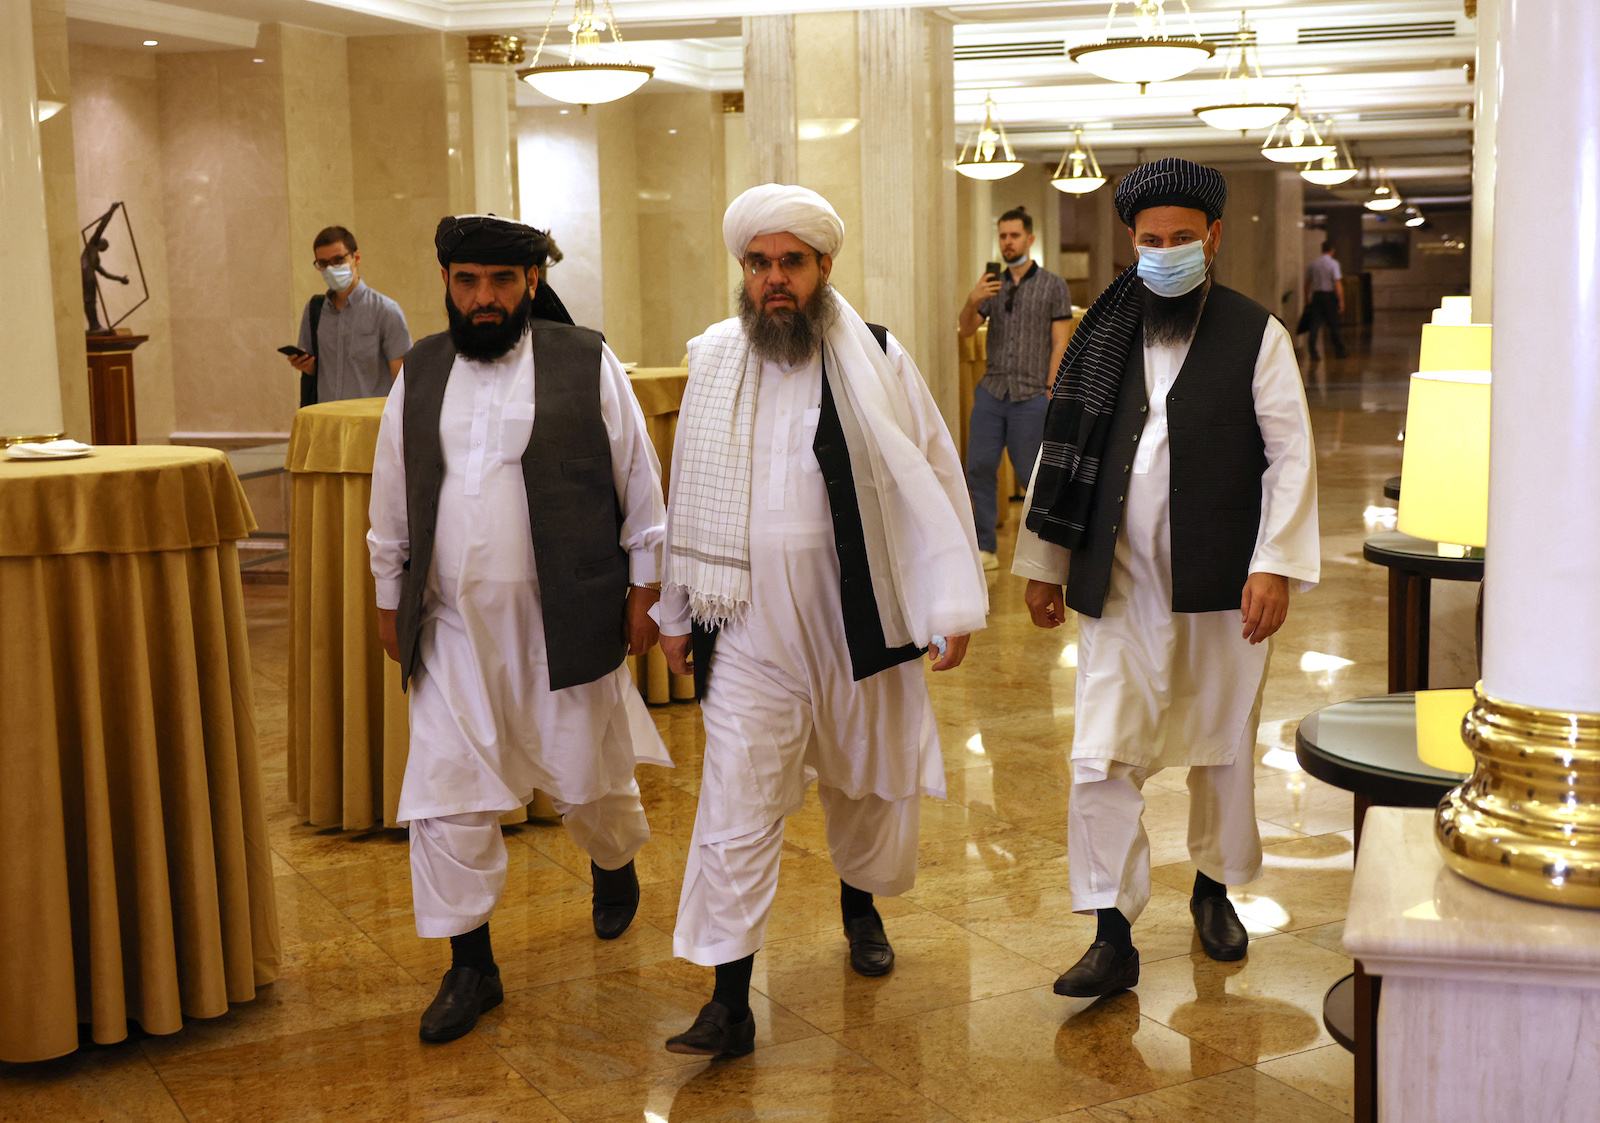 Taliban negotiators Abdul Latif Mansoor (right), Shahabuddin Delawar (center) and Suhail Shaheen (left) walk to attend a press conference in Moscow on July 9, 2021. Photo: AFP / Dimitar Dilkoff